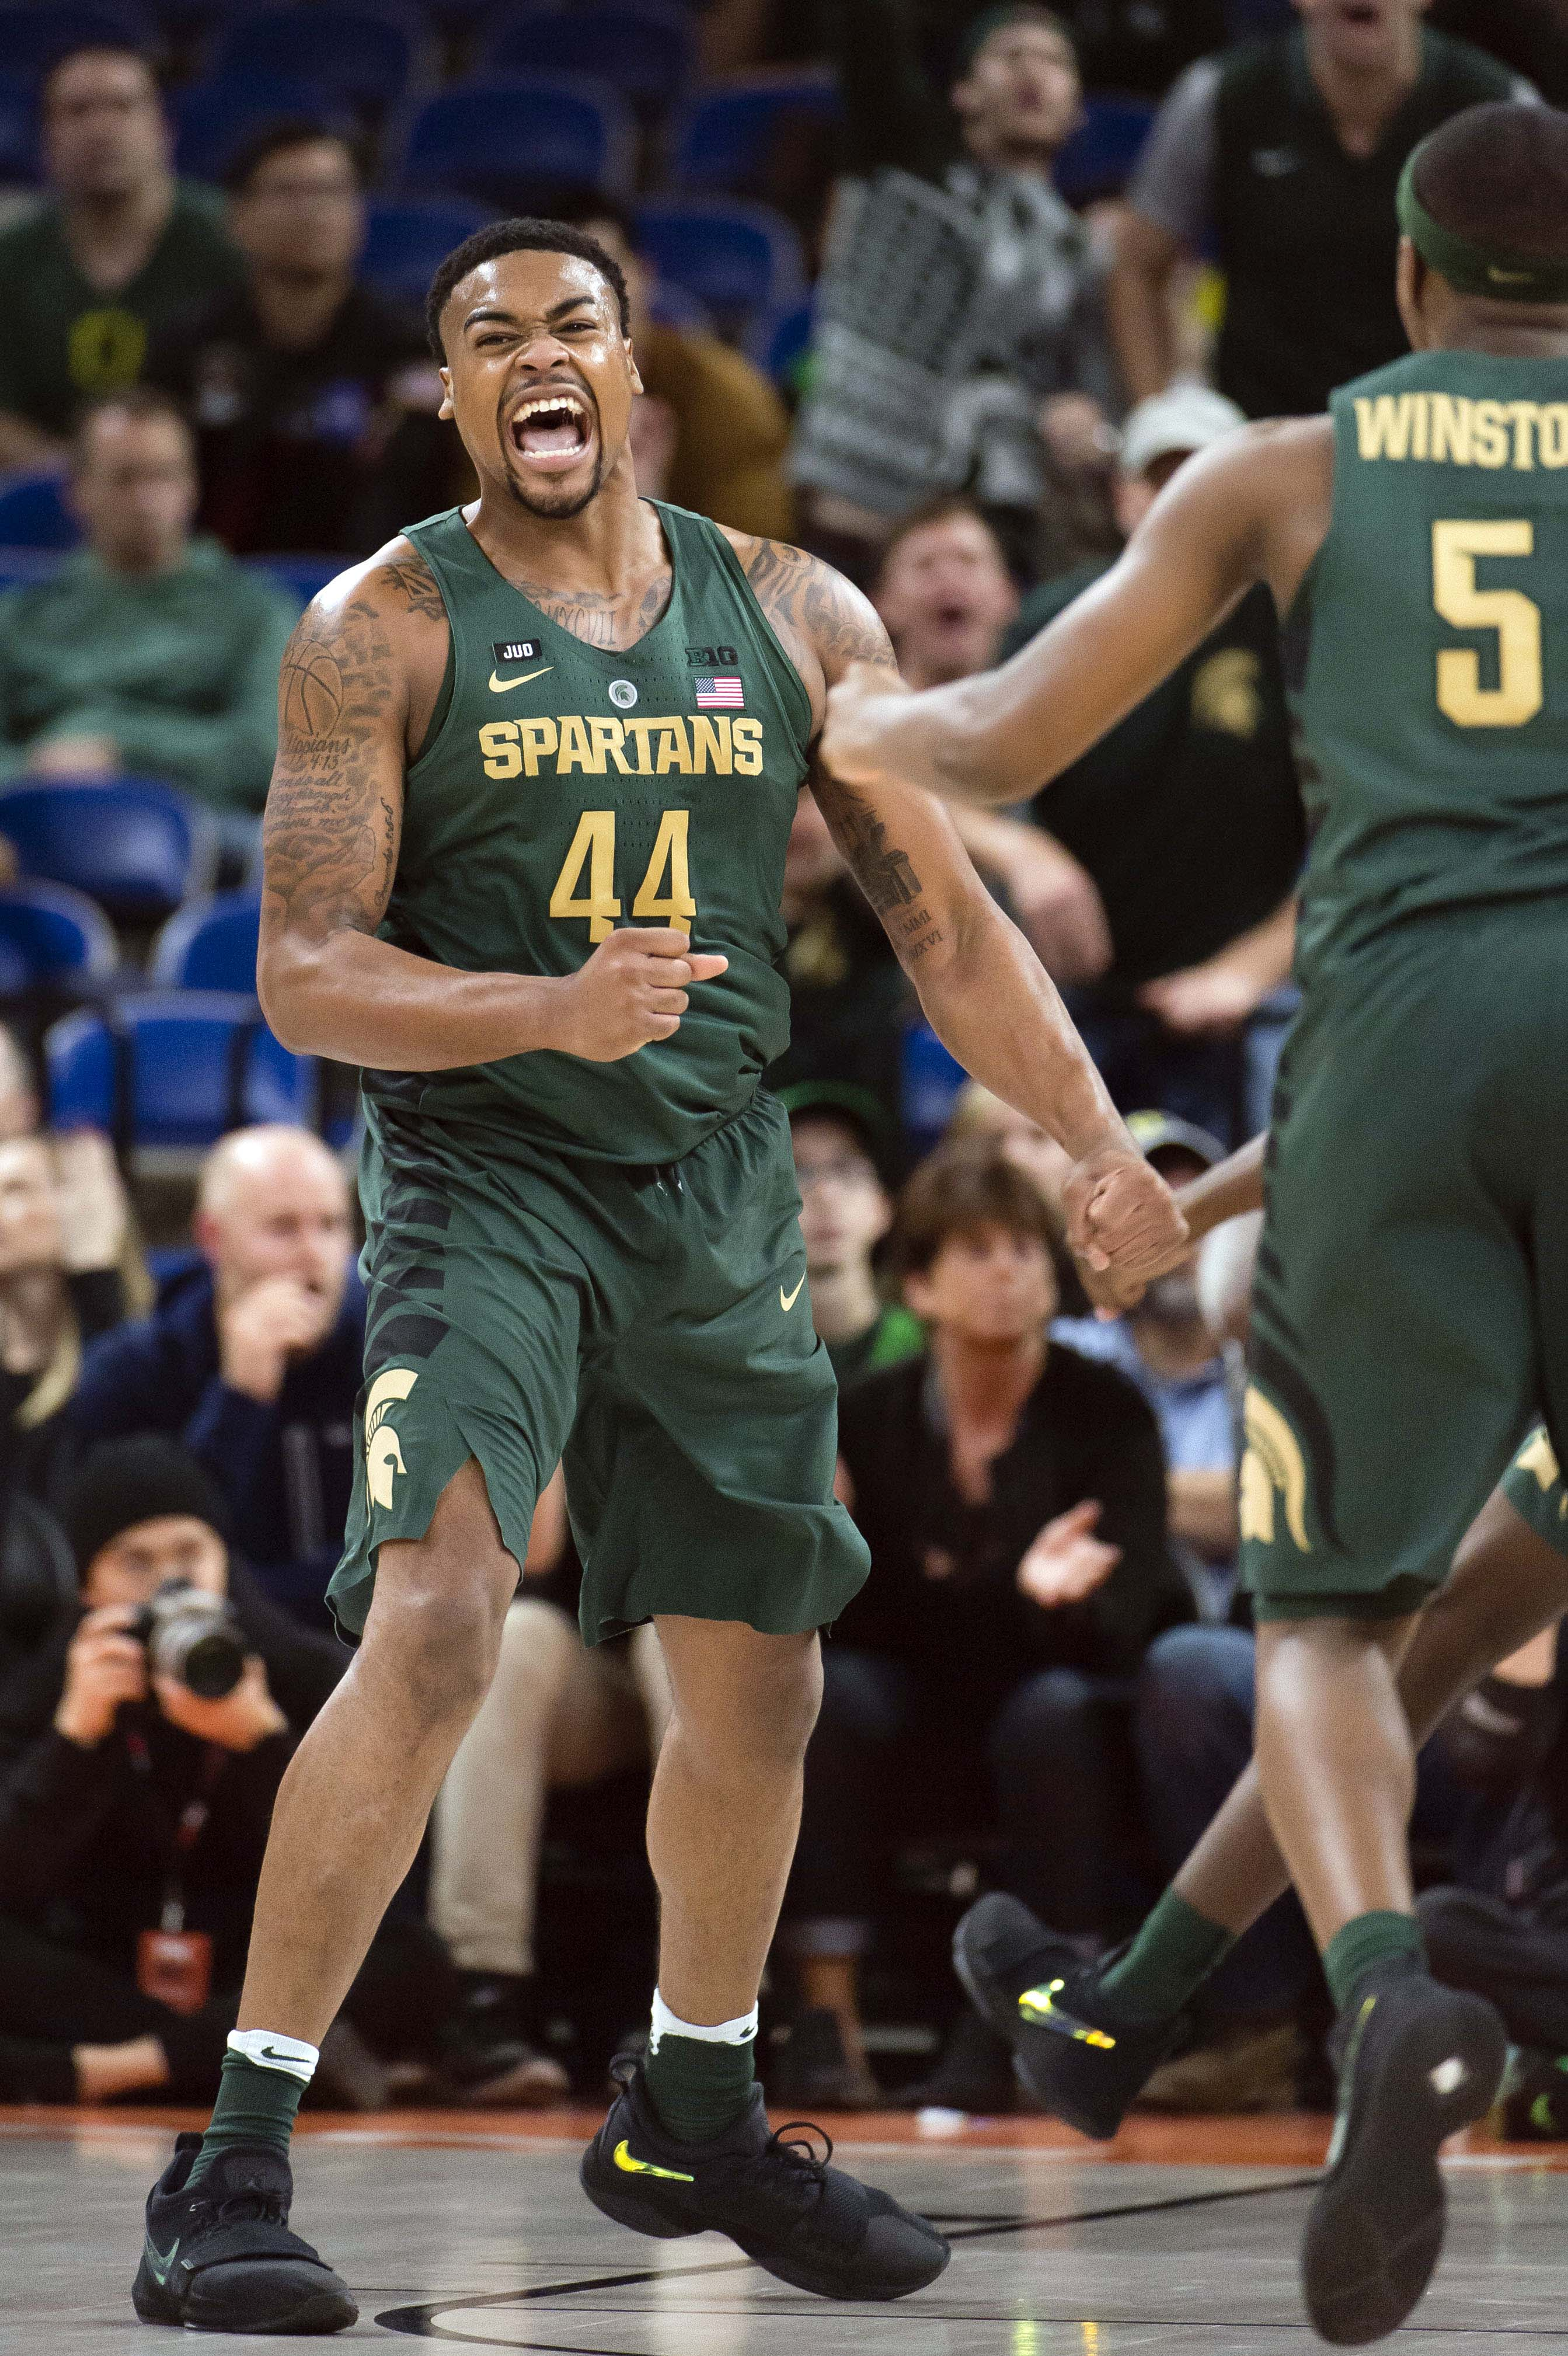 NCAA Basketball: Connecticut at Michigan State